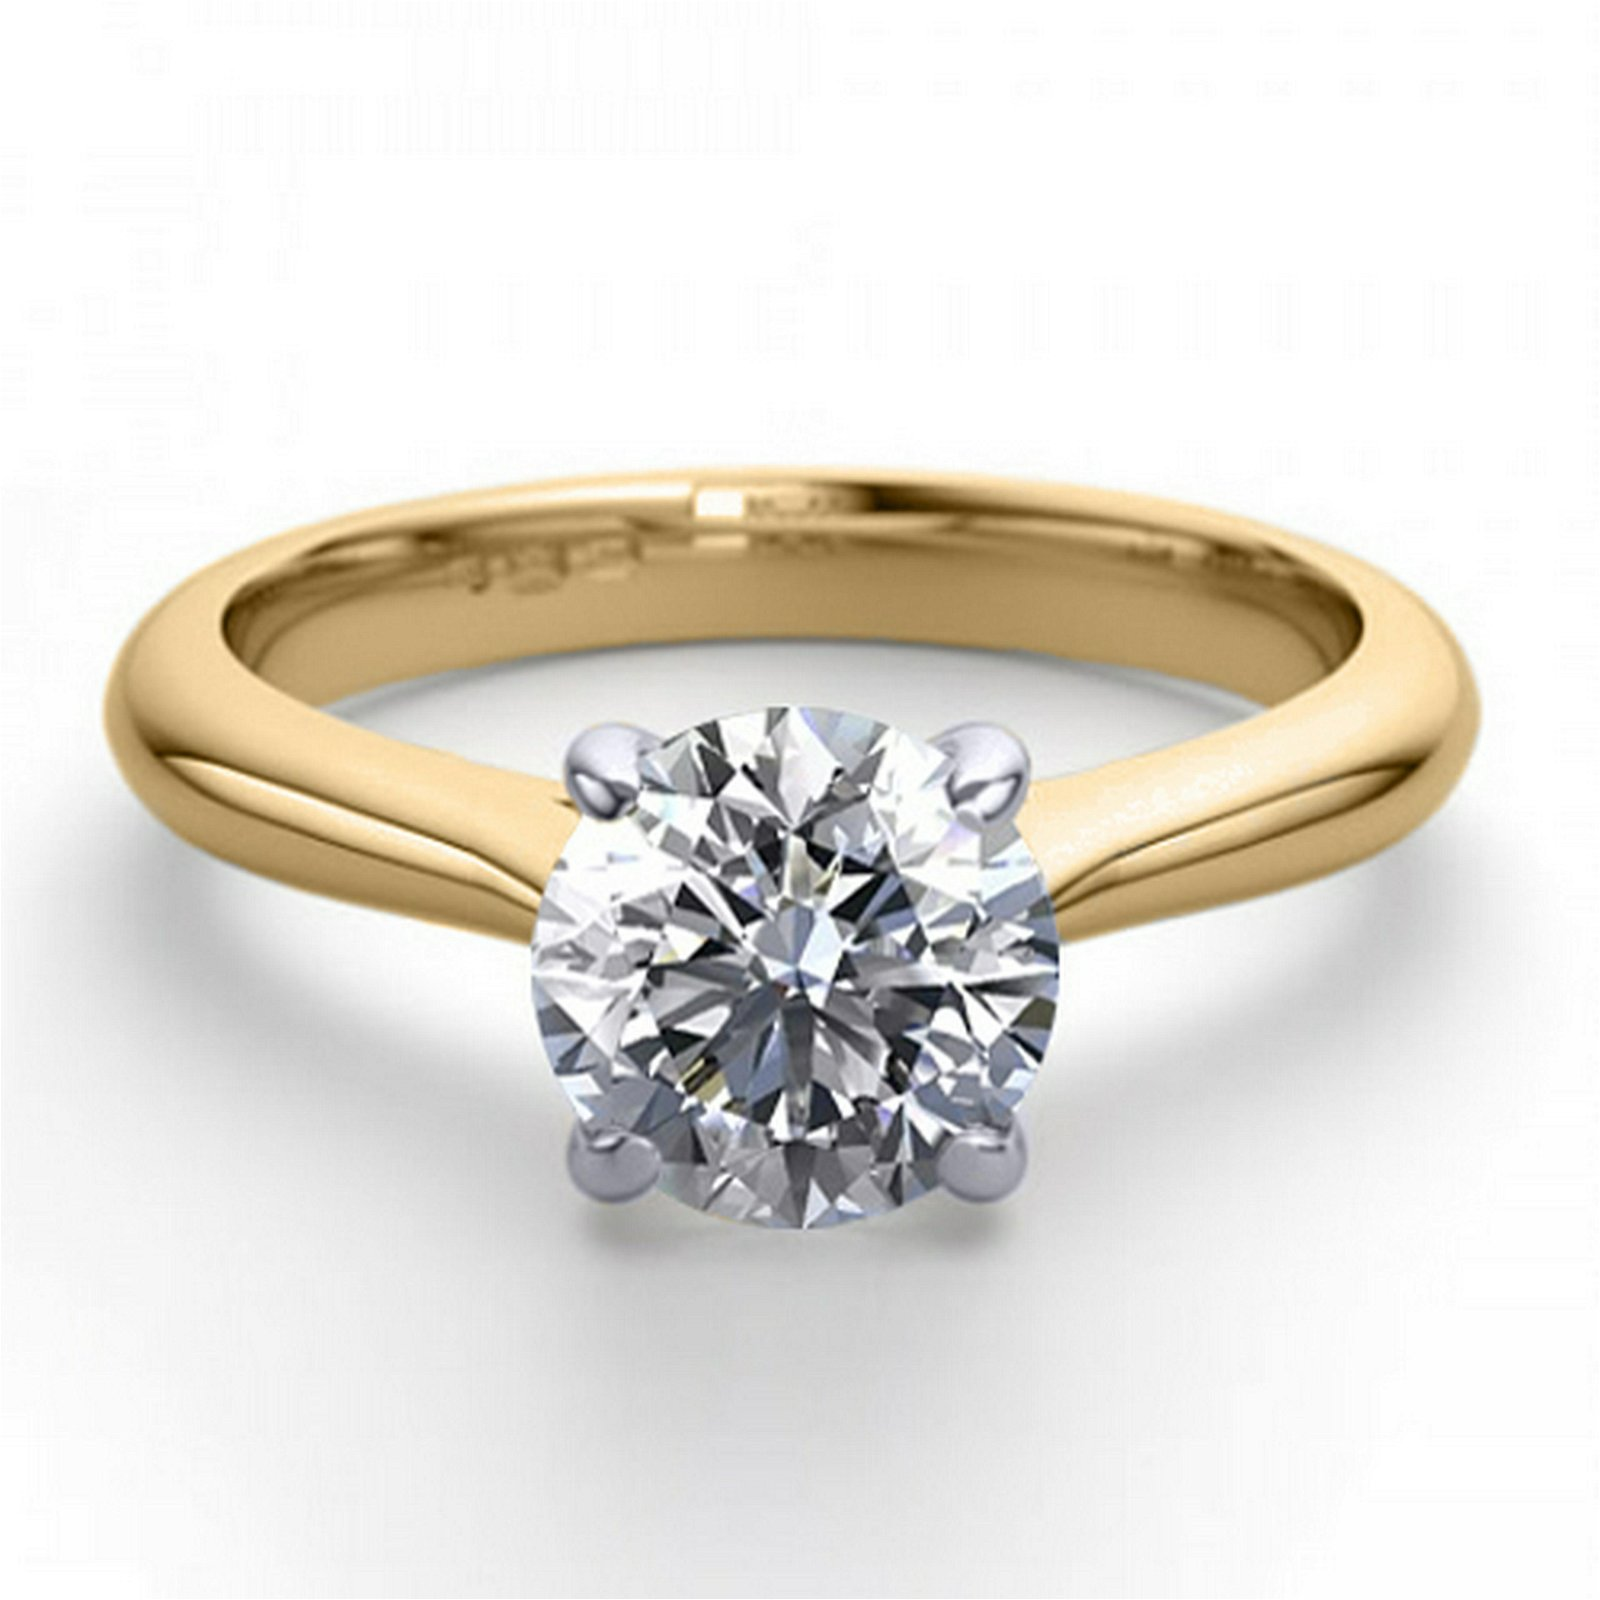 14K 2Tone Gold 1.36 ctw Natural Diamond Solitaire Ring